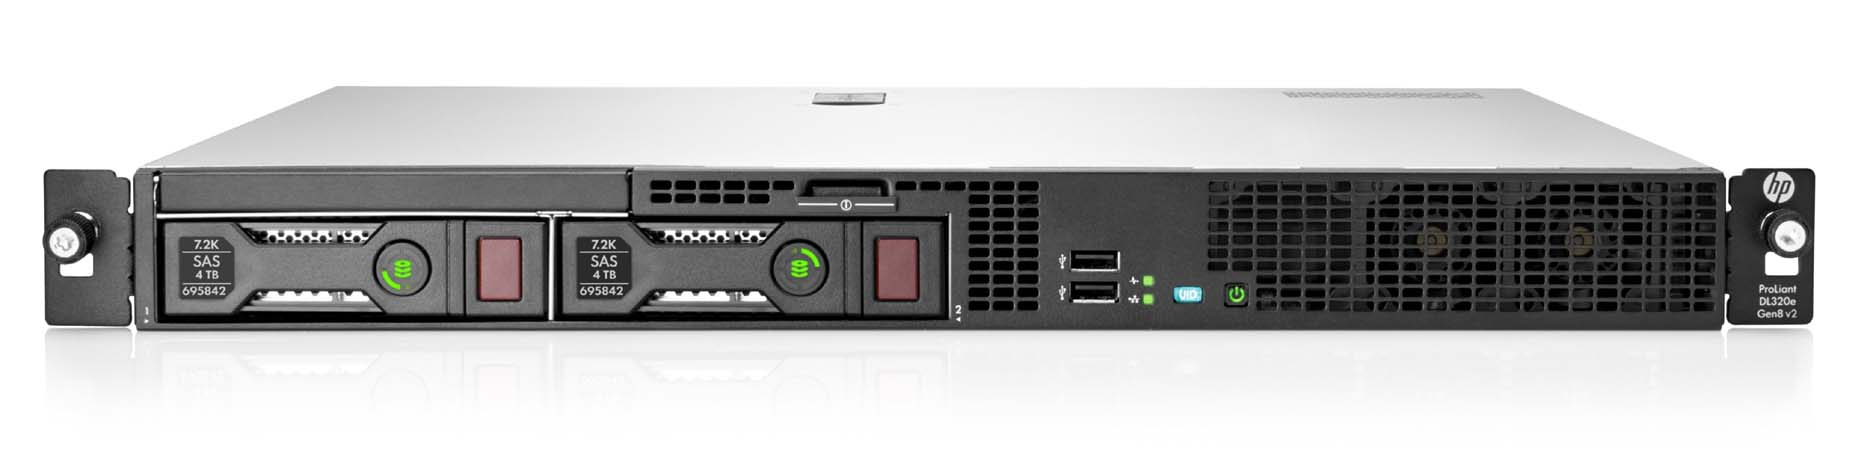 harga-hp-proliant-dl320e-gen8-v2-717170-